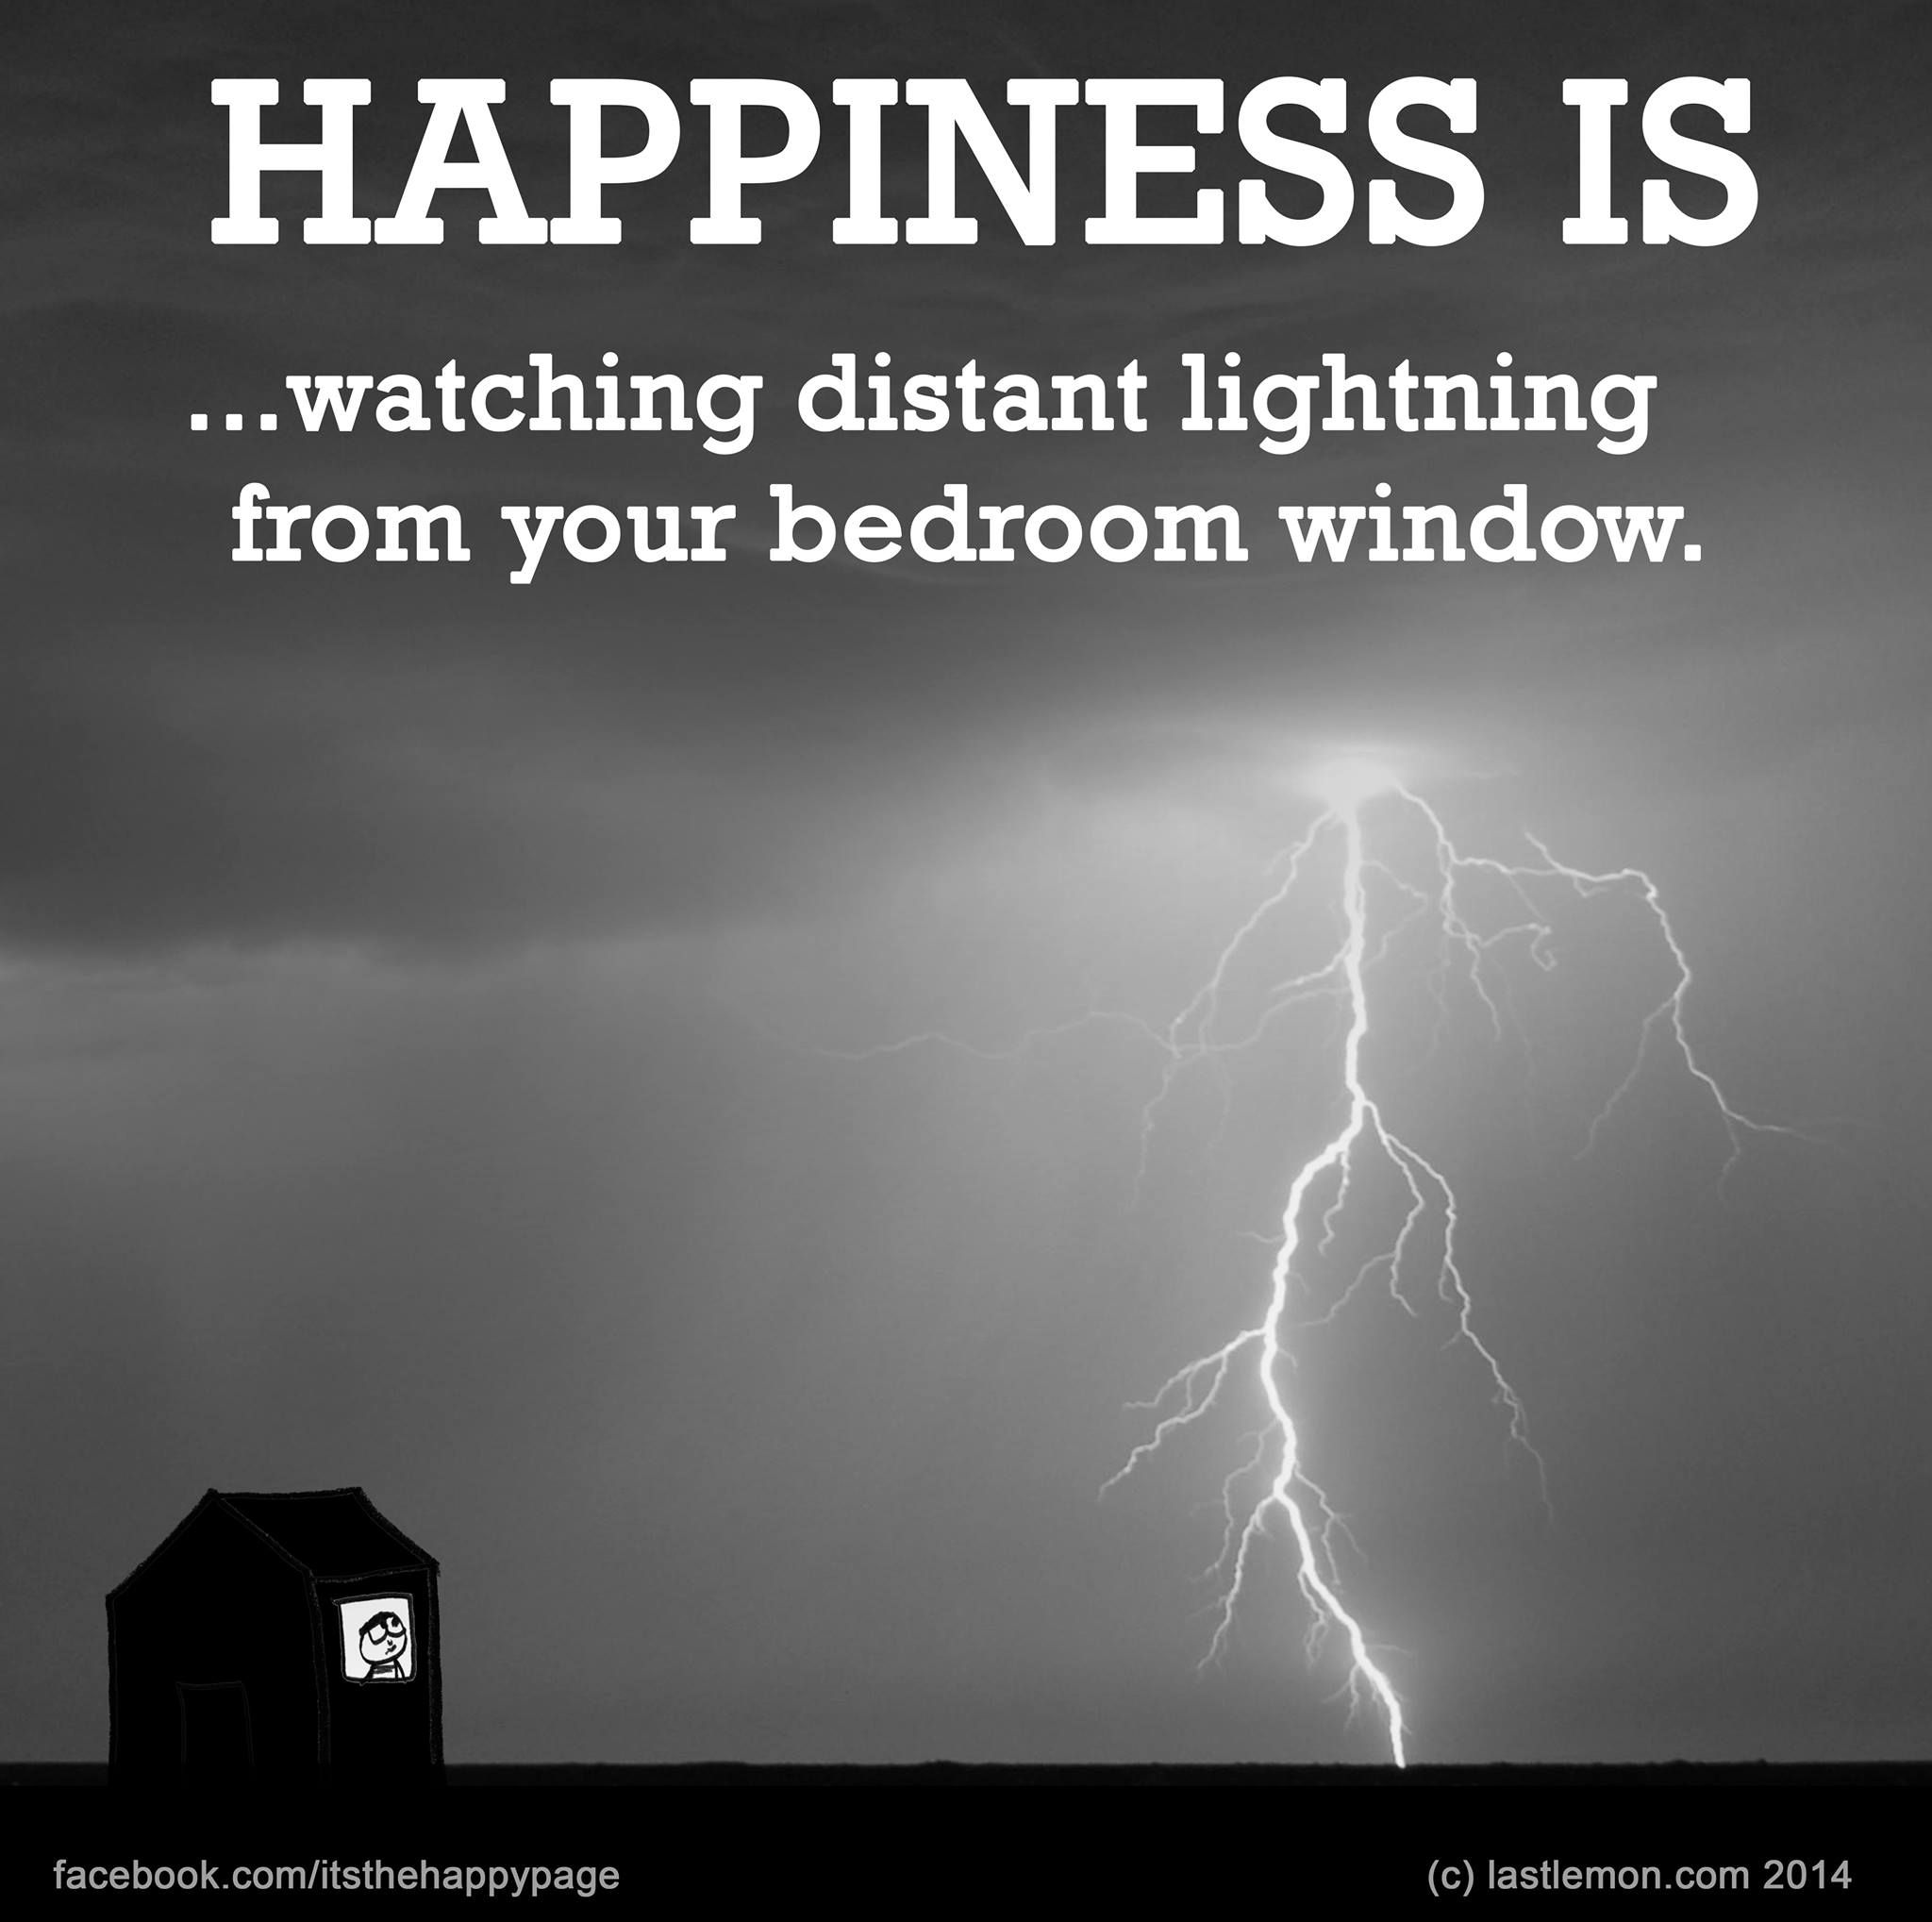 Happiness is watching distant lightening from your bedroom window.